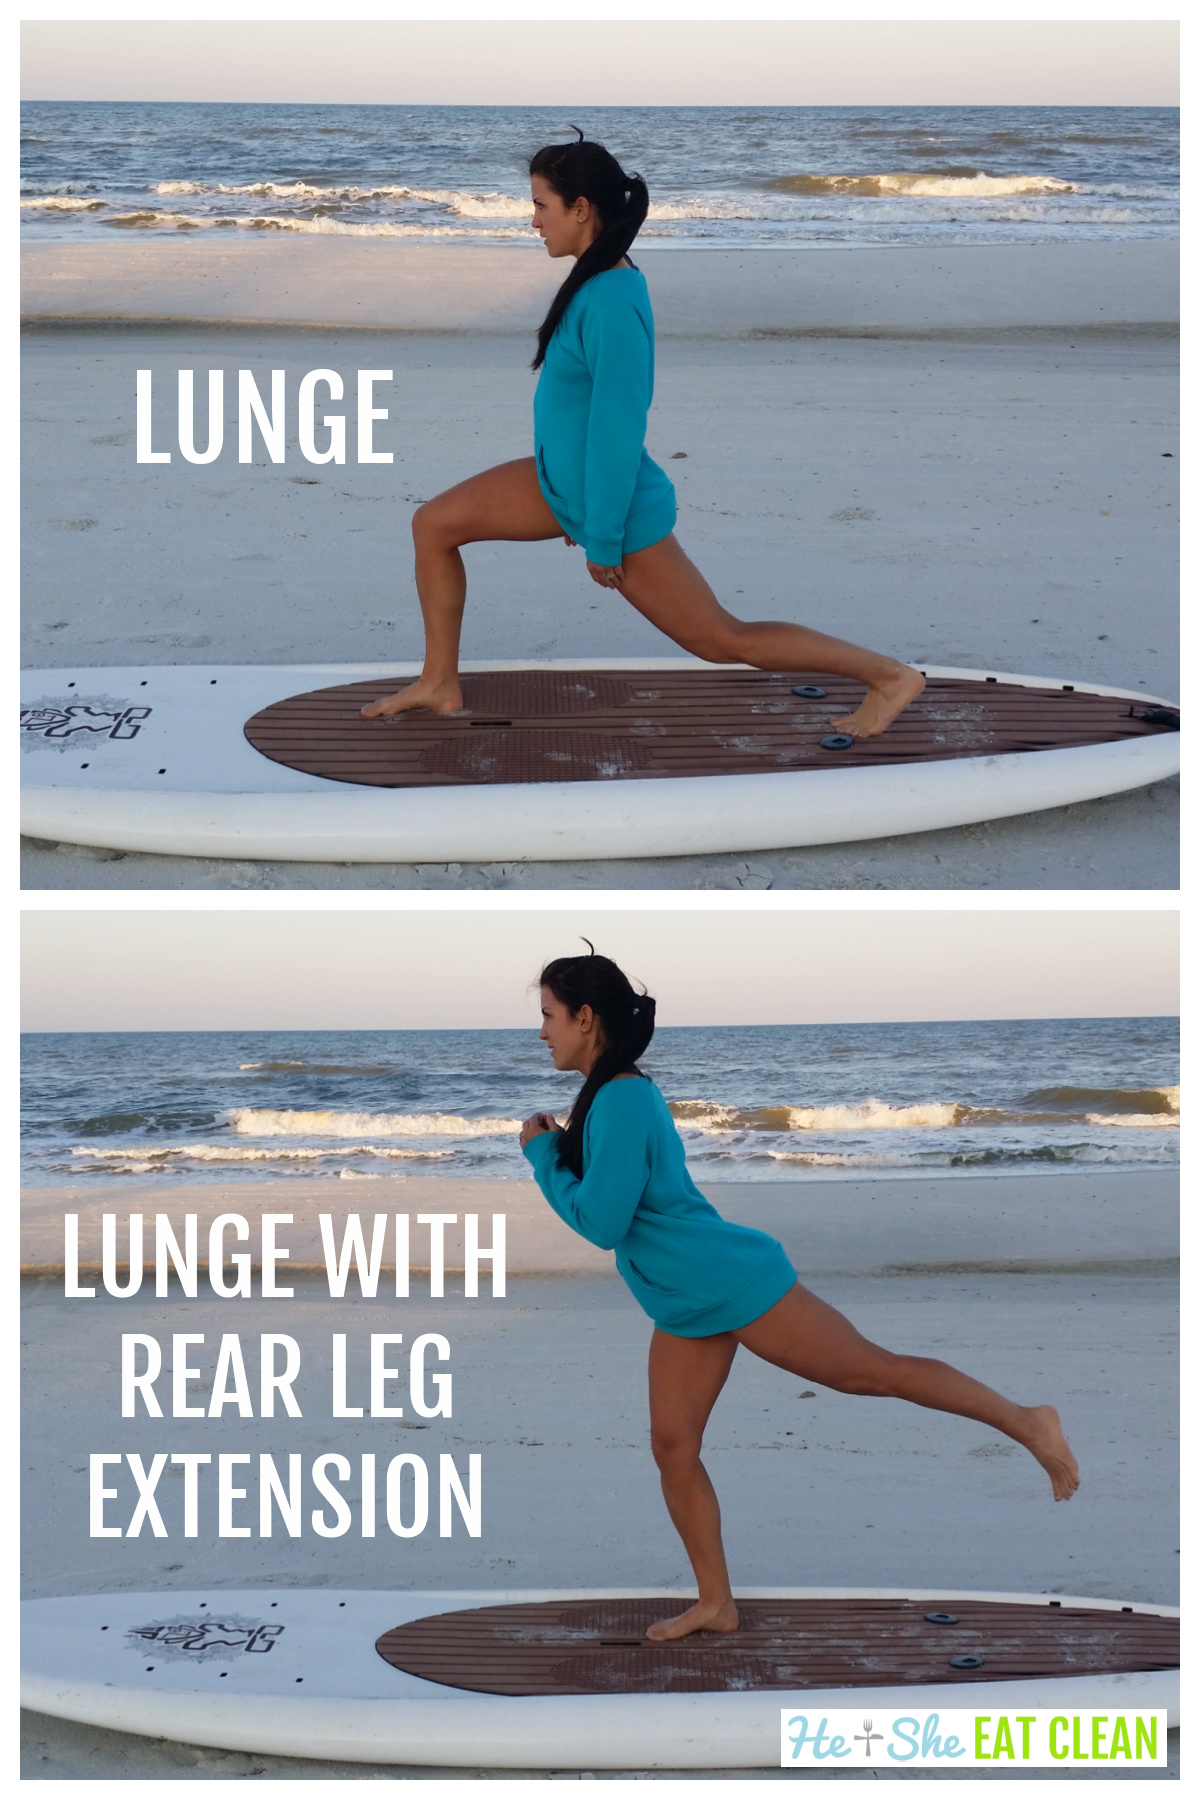 2 picture collage of female in sweatshirt doing a lunge and lunge with rear leg extension